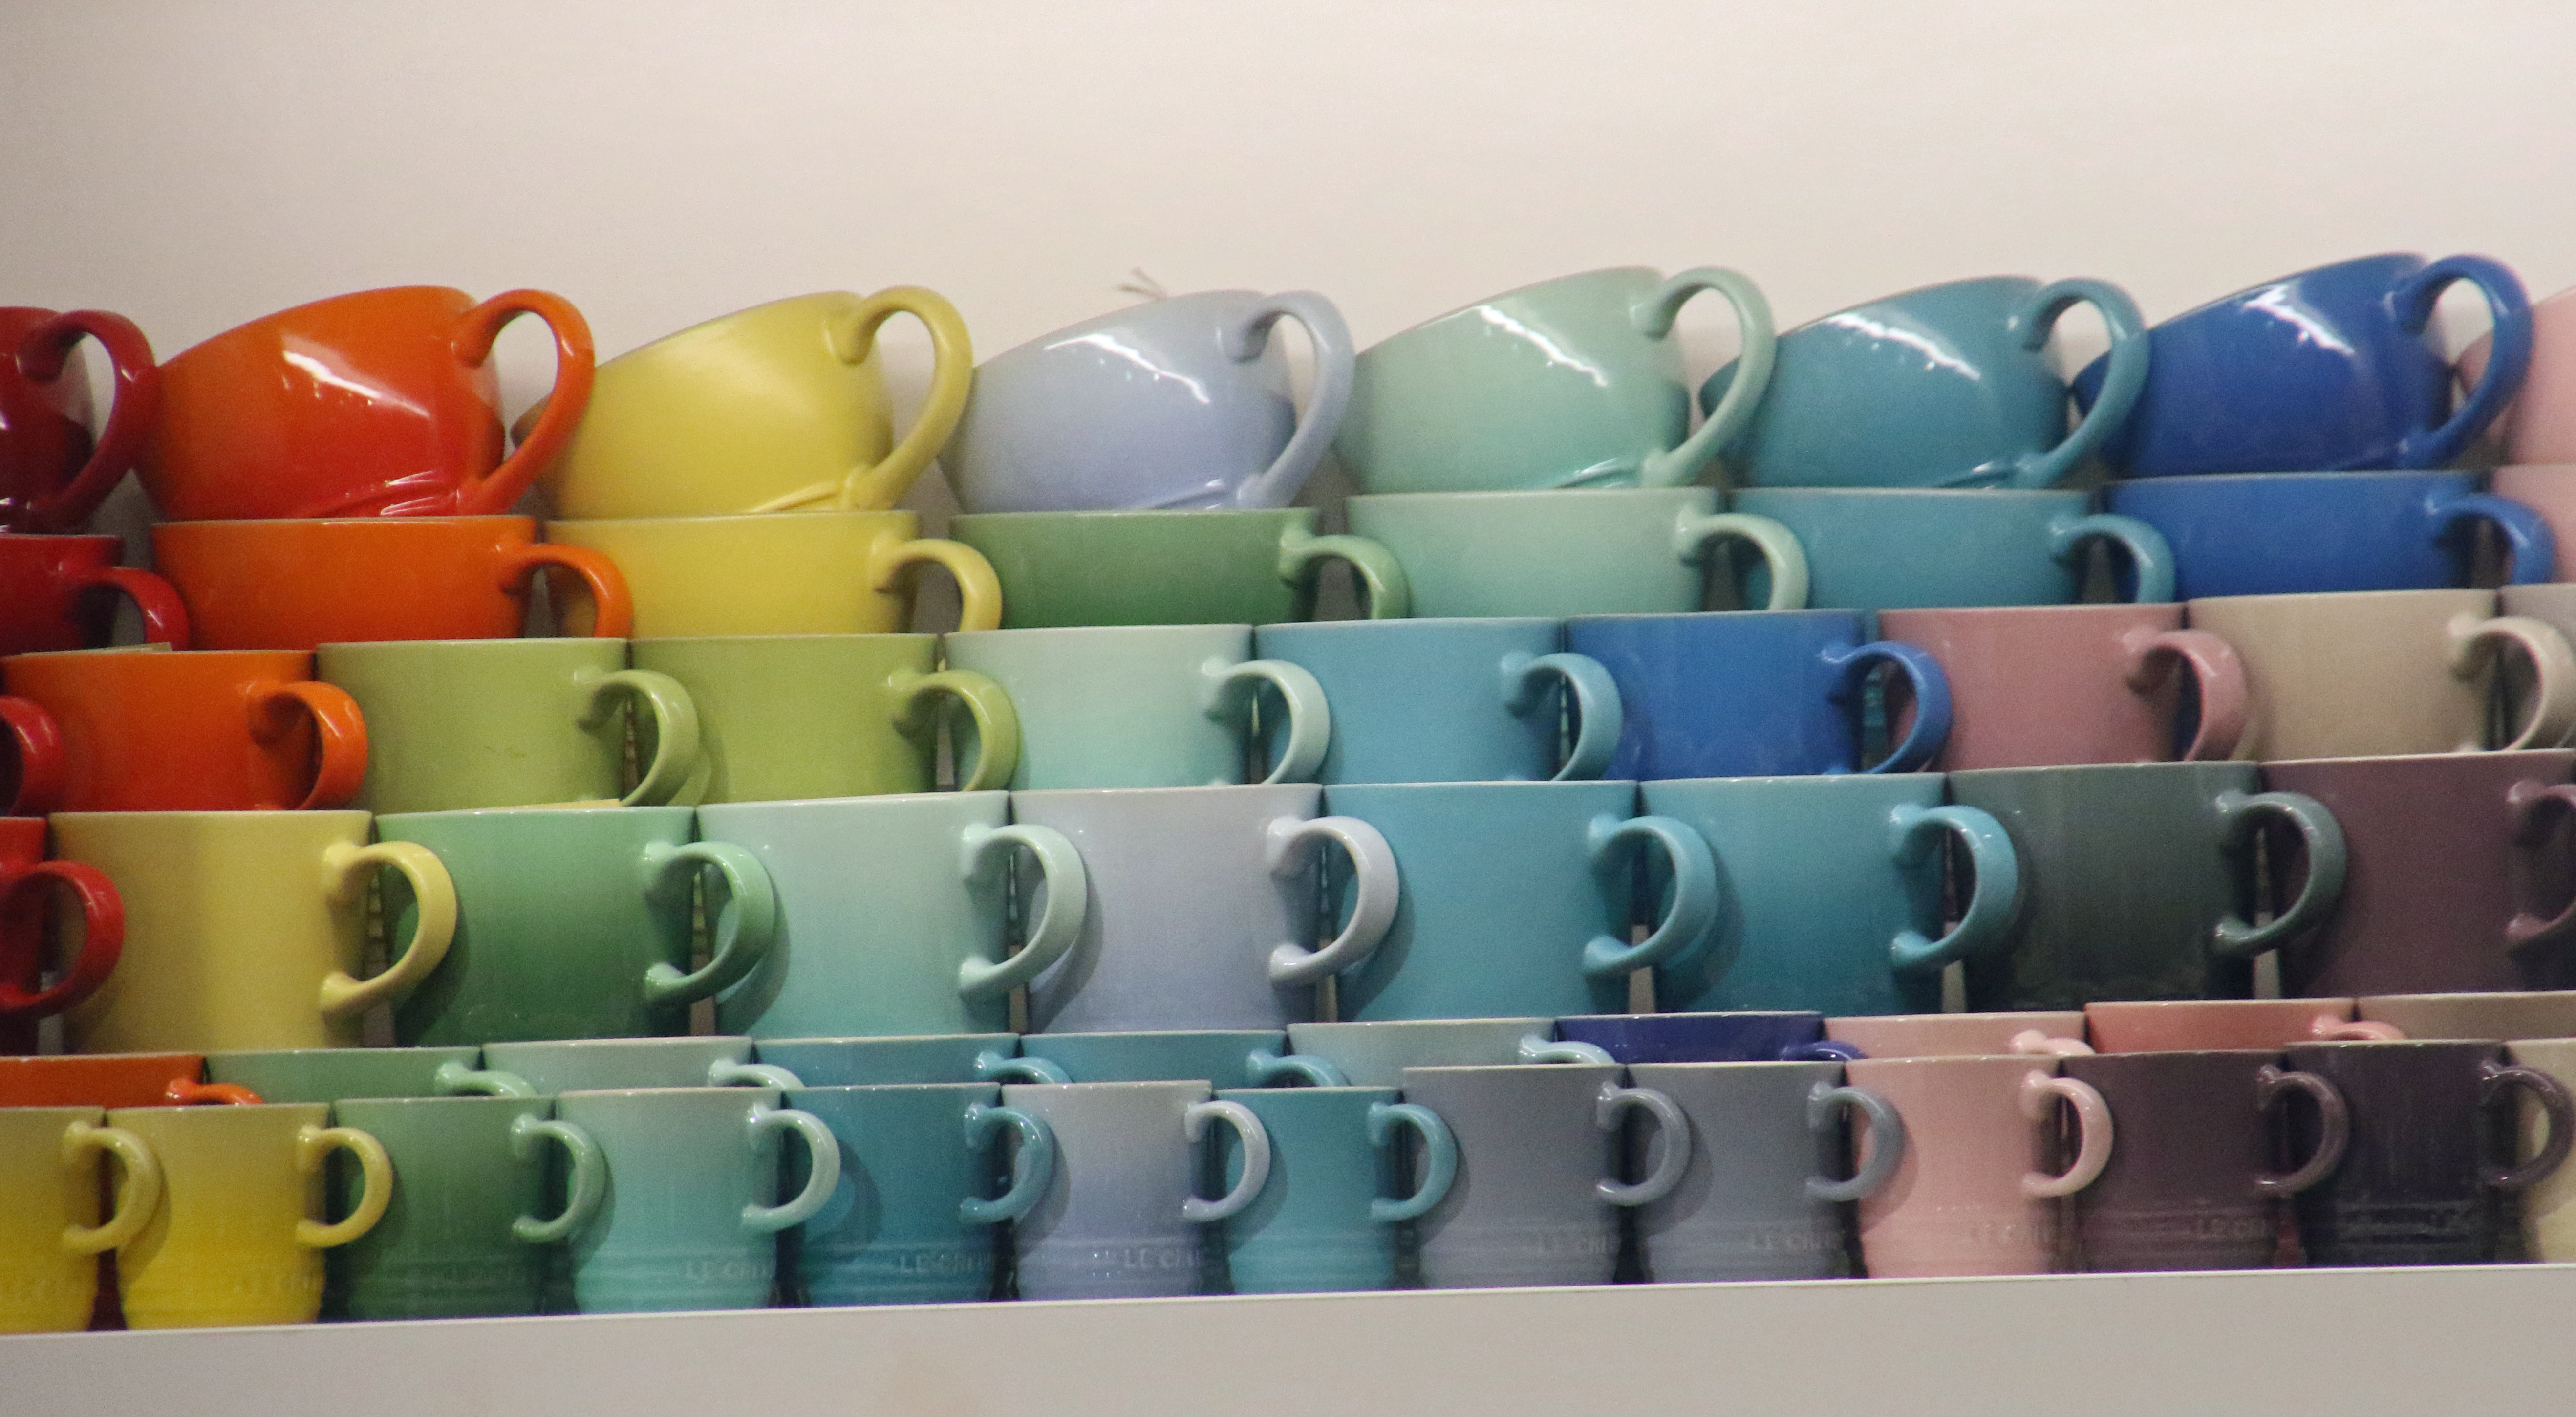 Colourful cups in the showcase photo